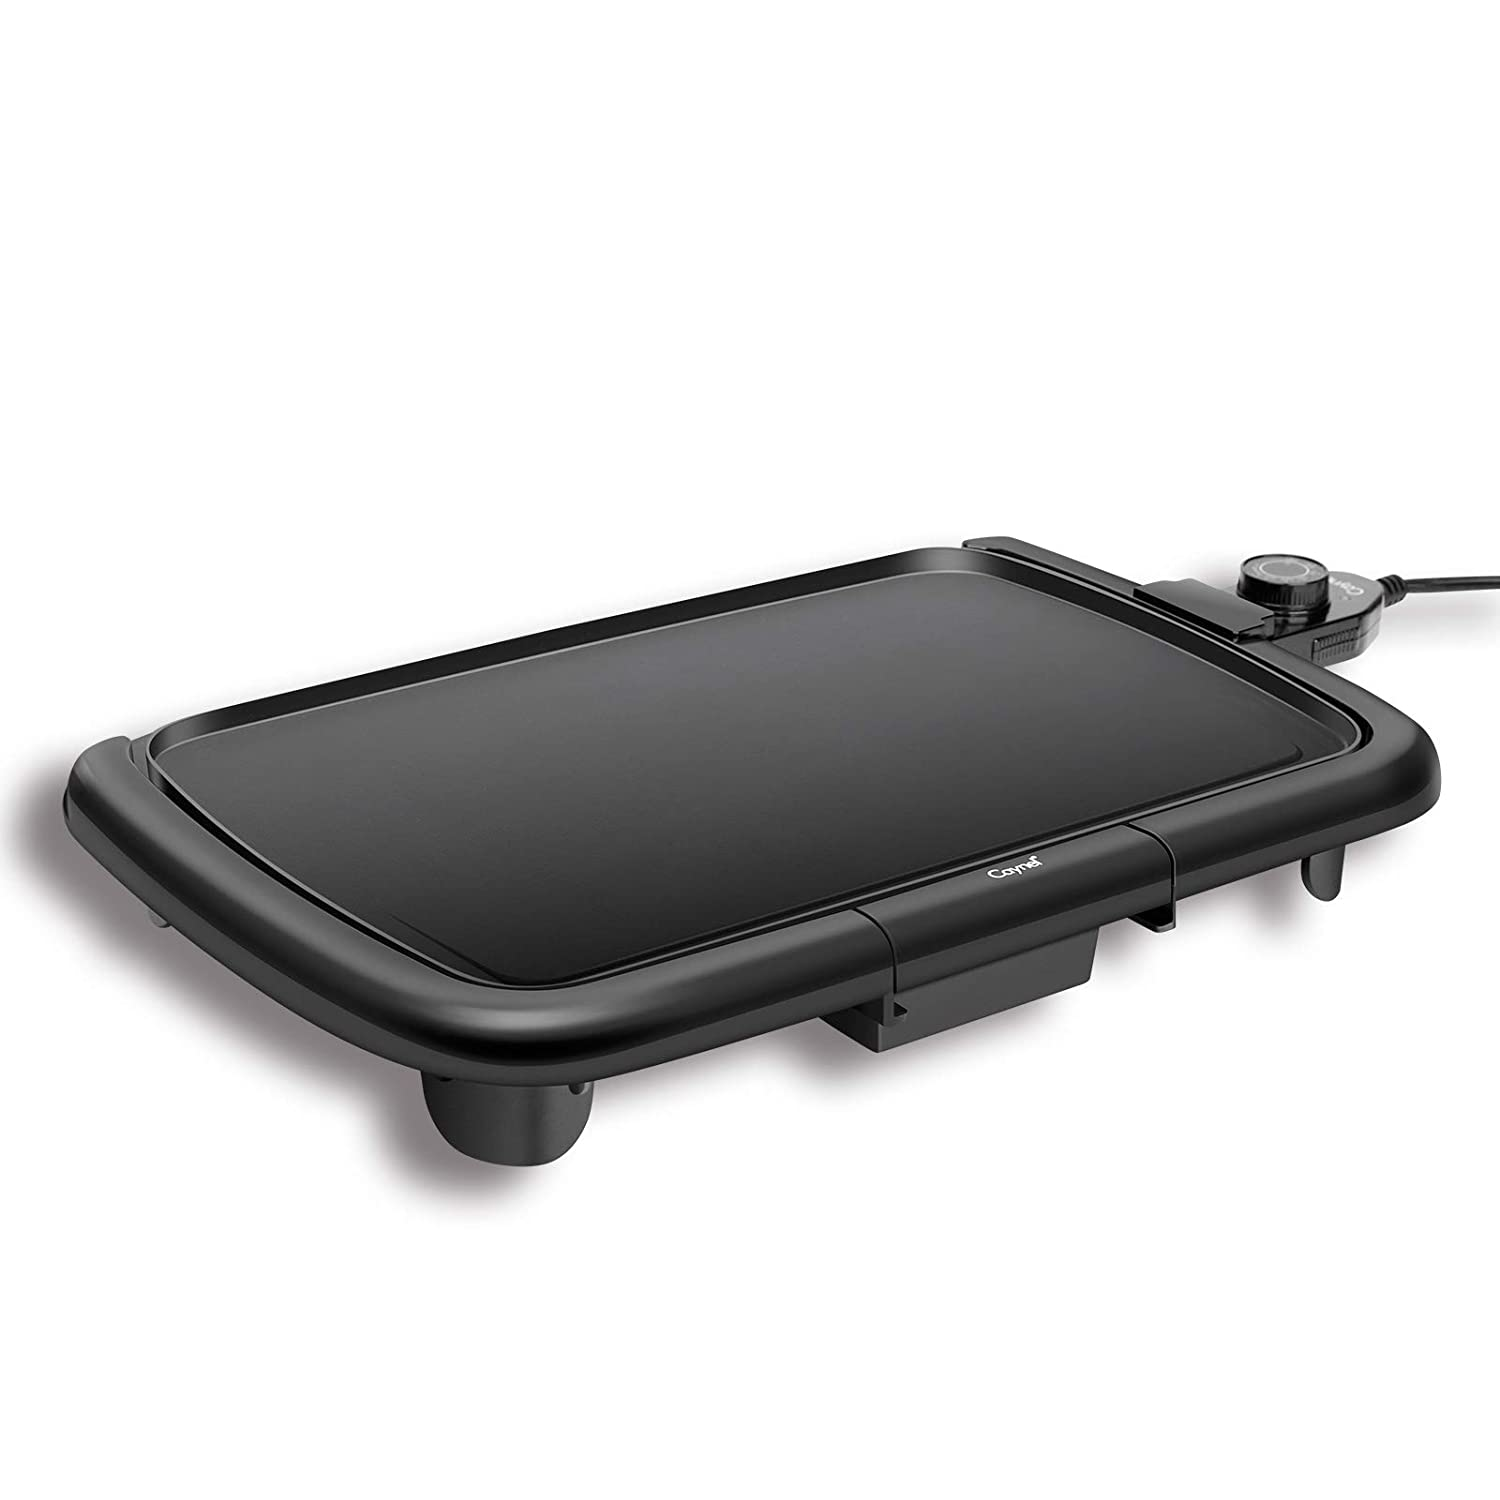 "Caynel Professional Electric Griddle, Cool-Touch Griddle, Smoke-less Non-Stick Coating with Removable Drip Tray and Cool-touch Handles, Compact Storage, Upgrade Thermostat for Indoor/Outdoor, Fully immersible Easy Cleaning, 16""x10"" Family-Sized, Copper (Black)"